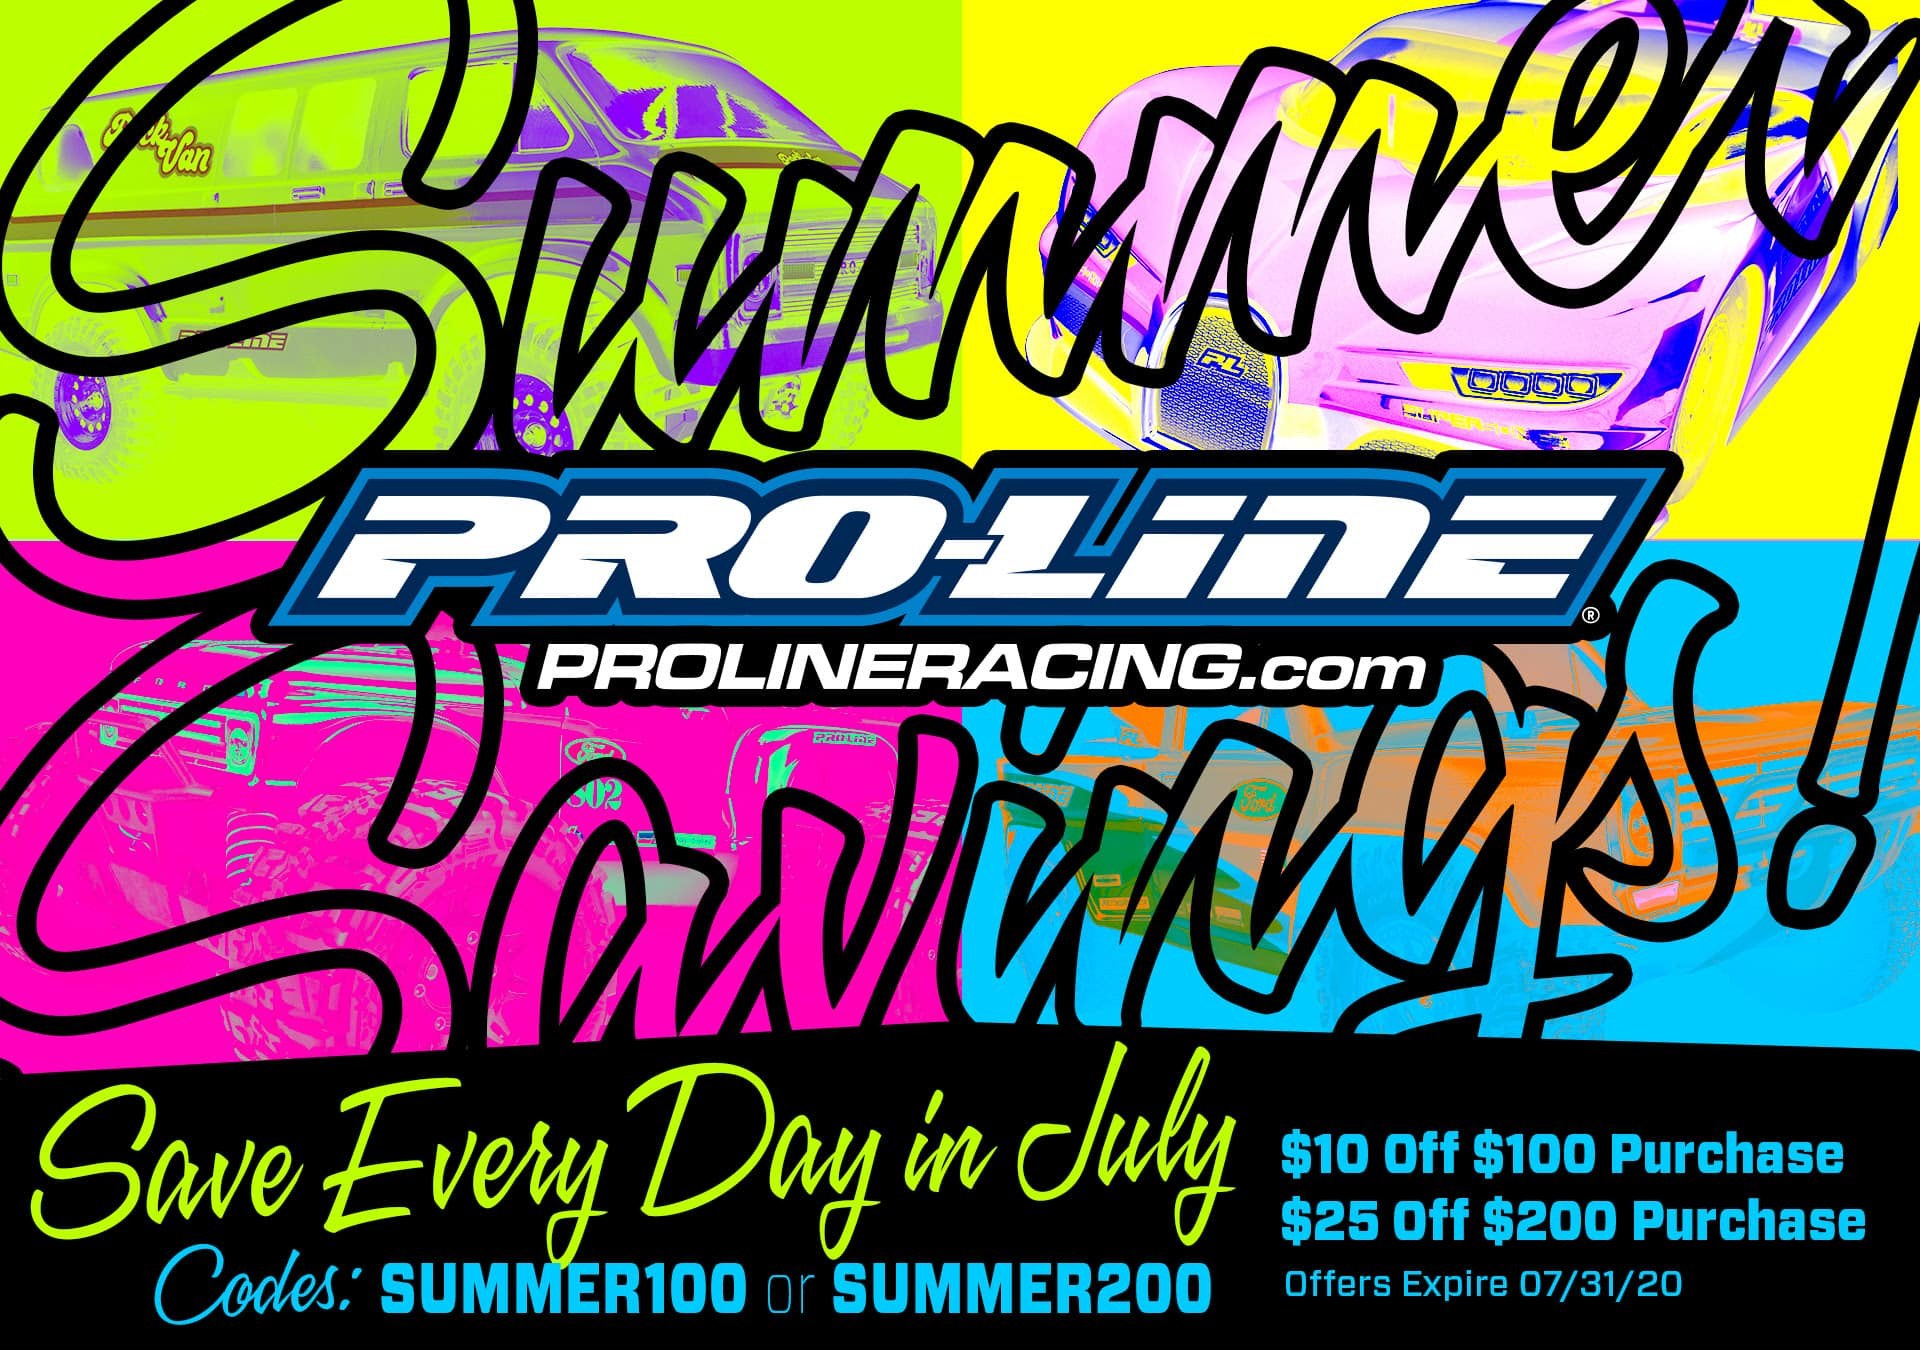 Save on Upgrades Every Day in July with Pro-Line's Summer Savings Sale